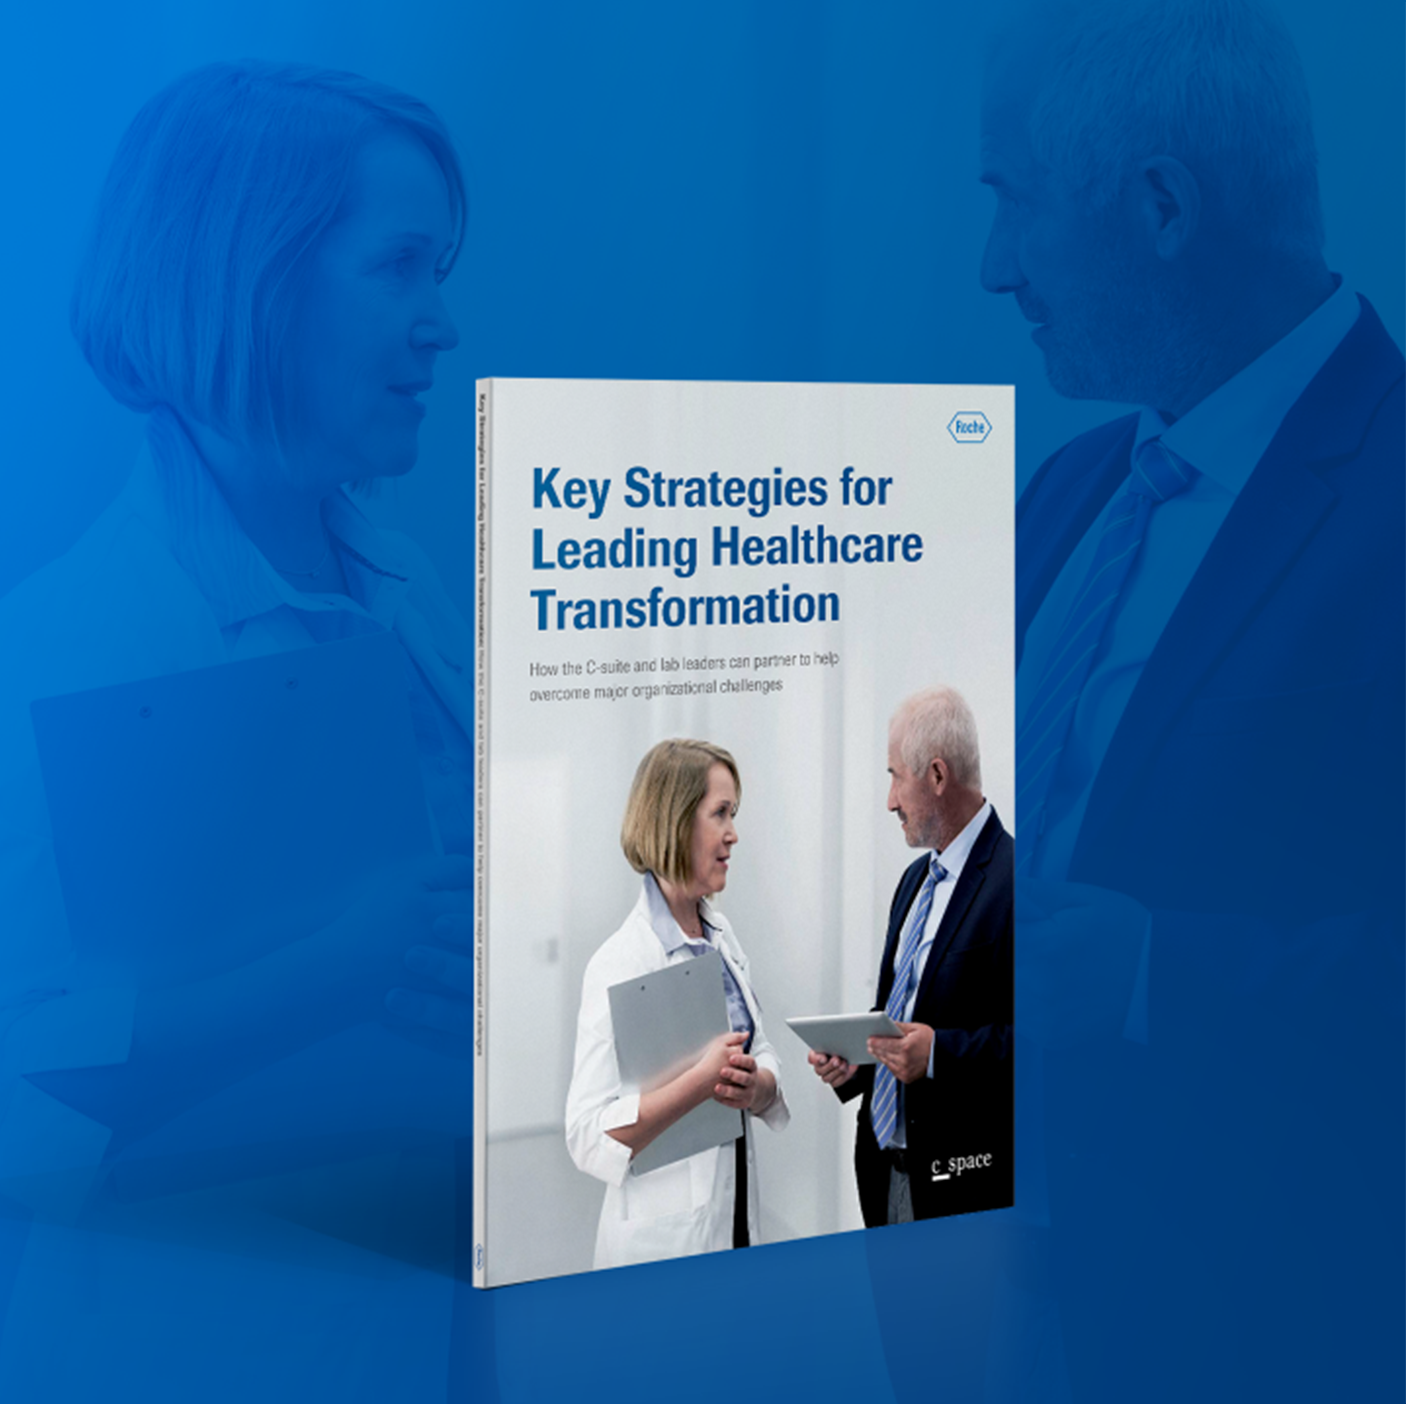 Key Strategies for leading healthcare transformation